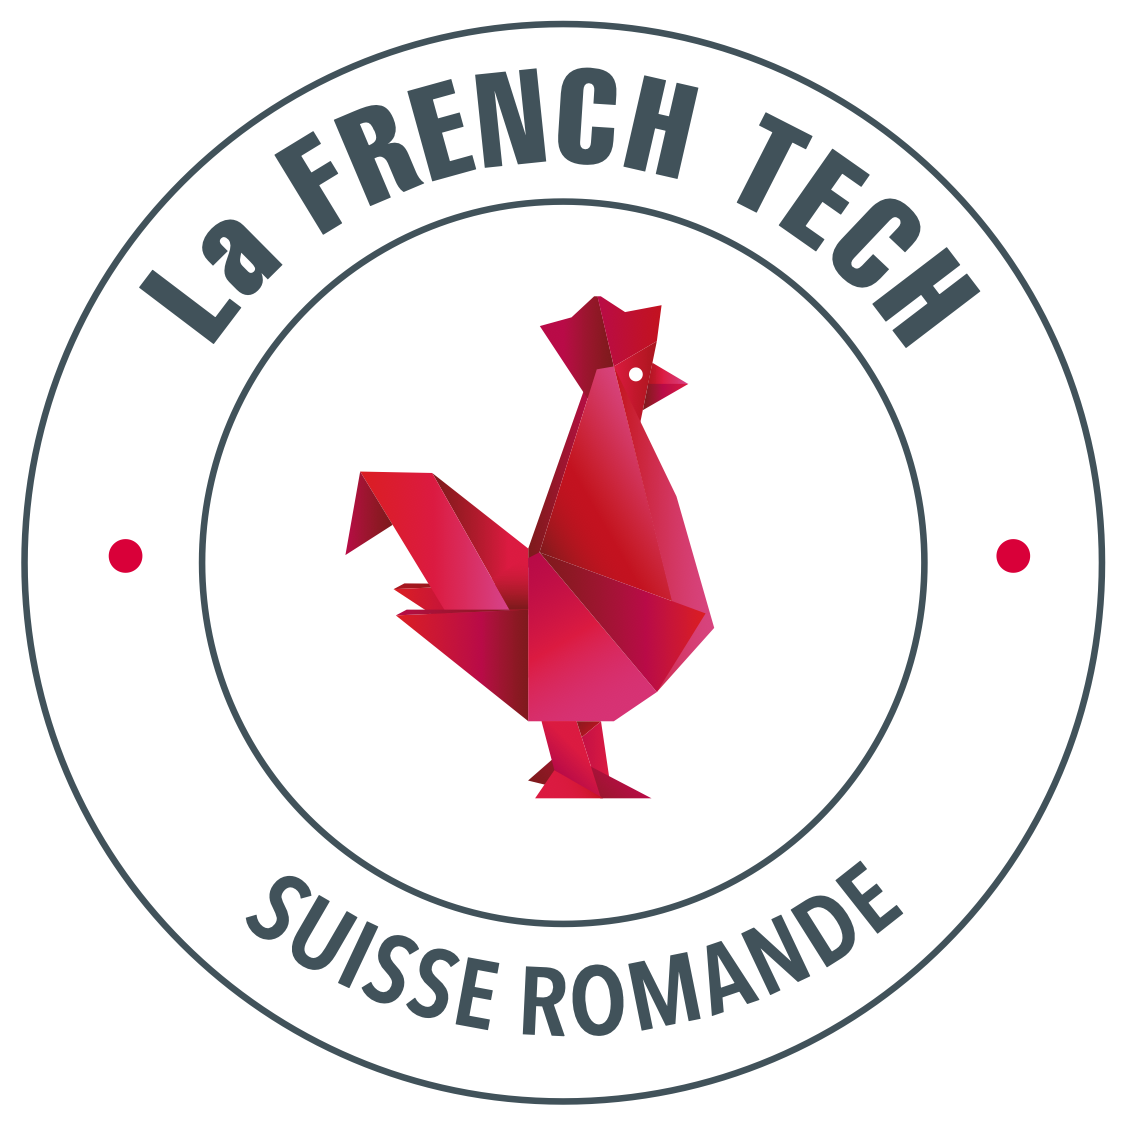 La French Tech Suisse Romande